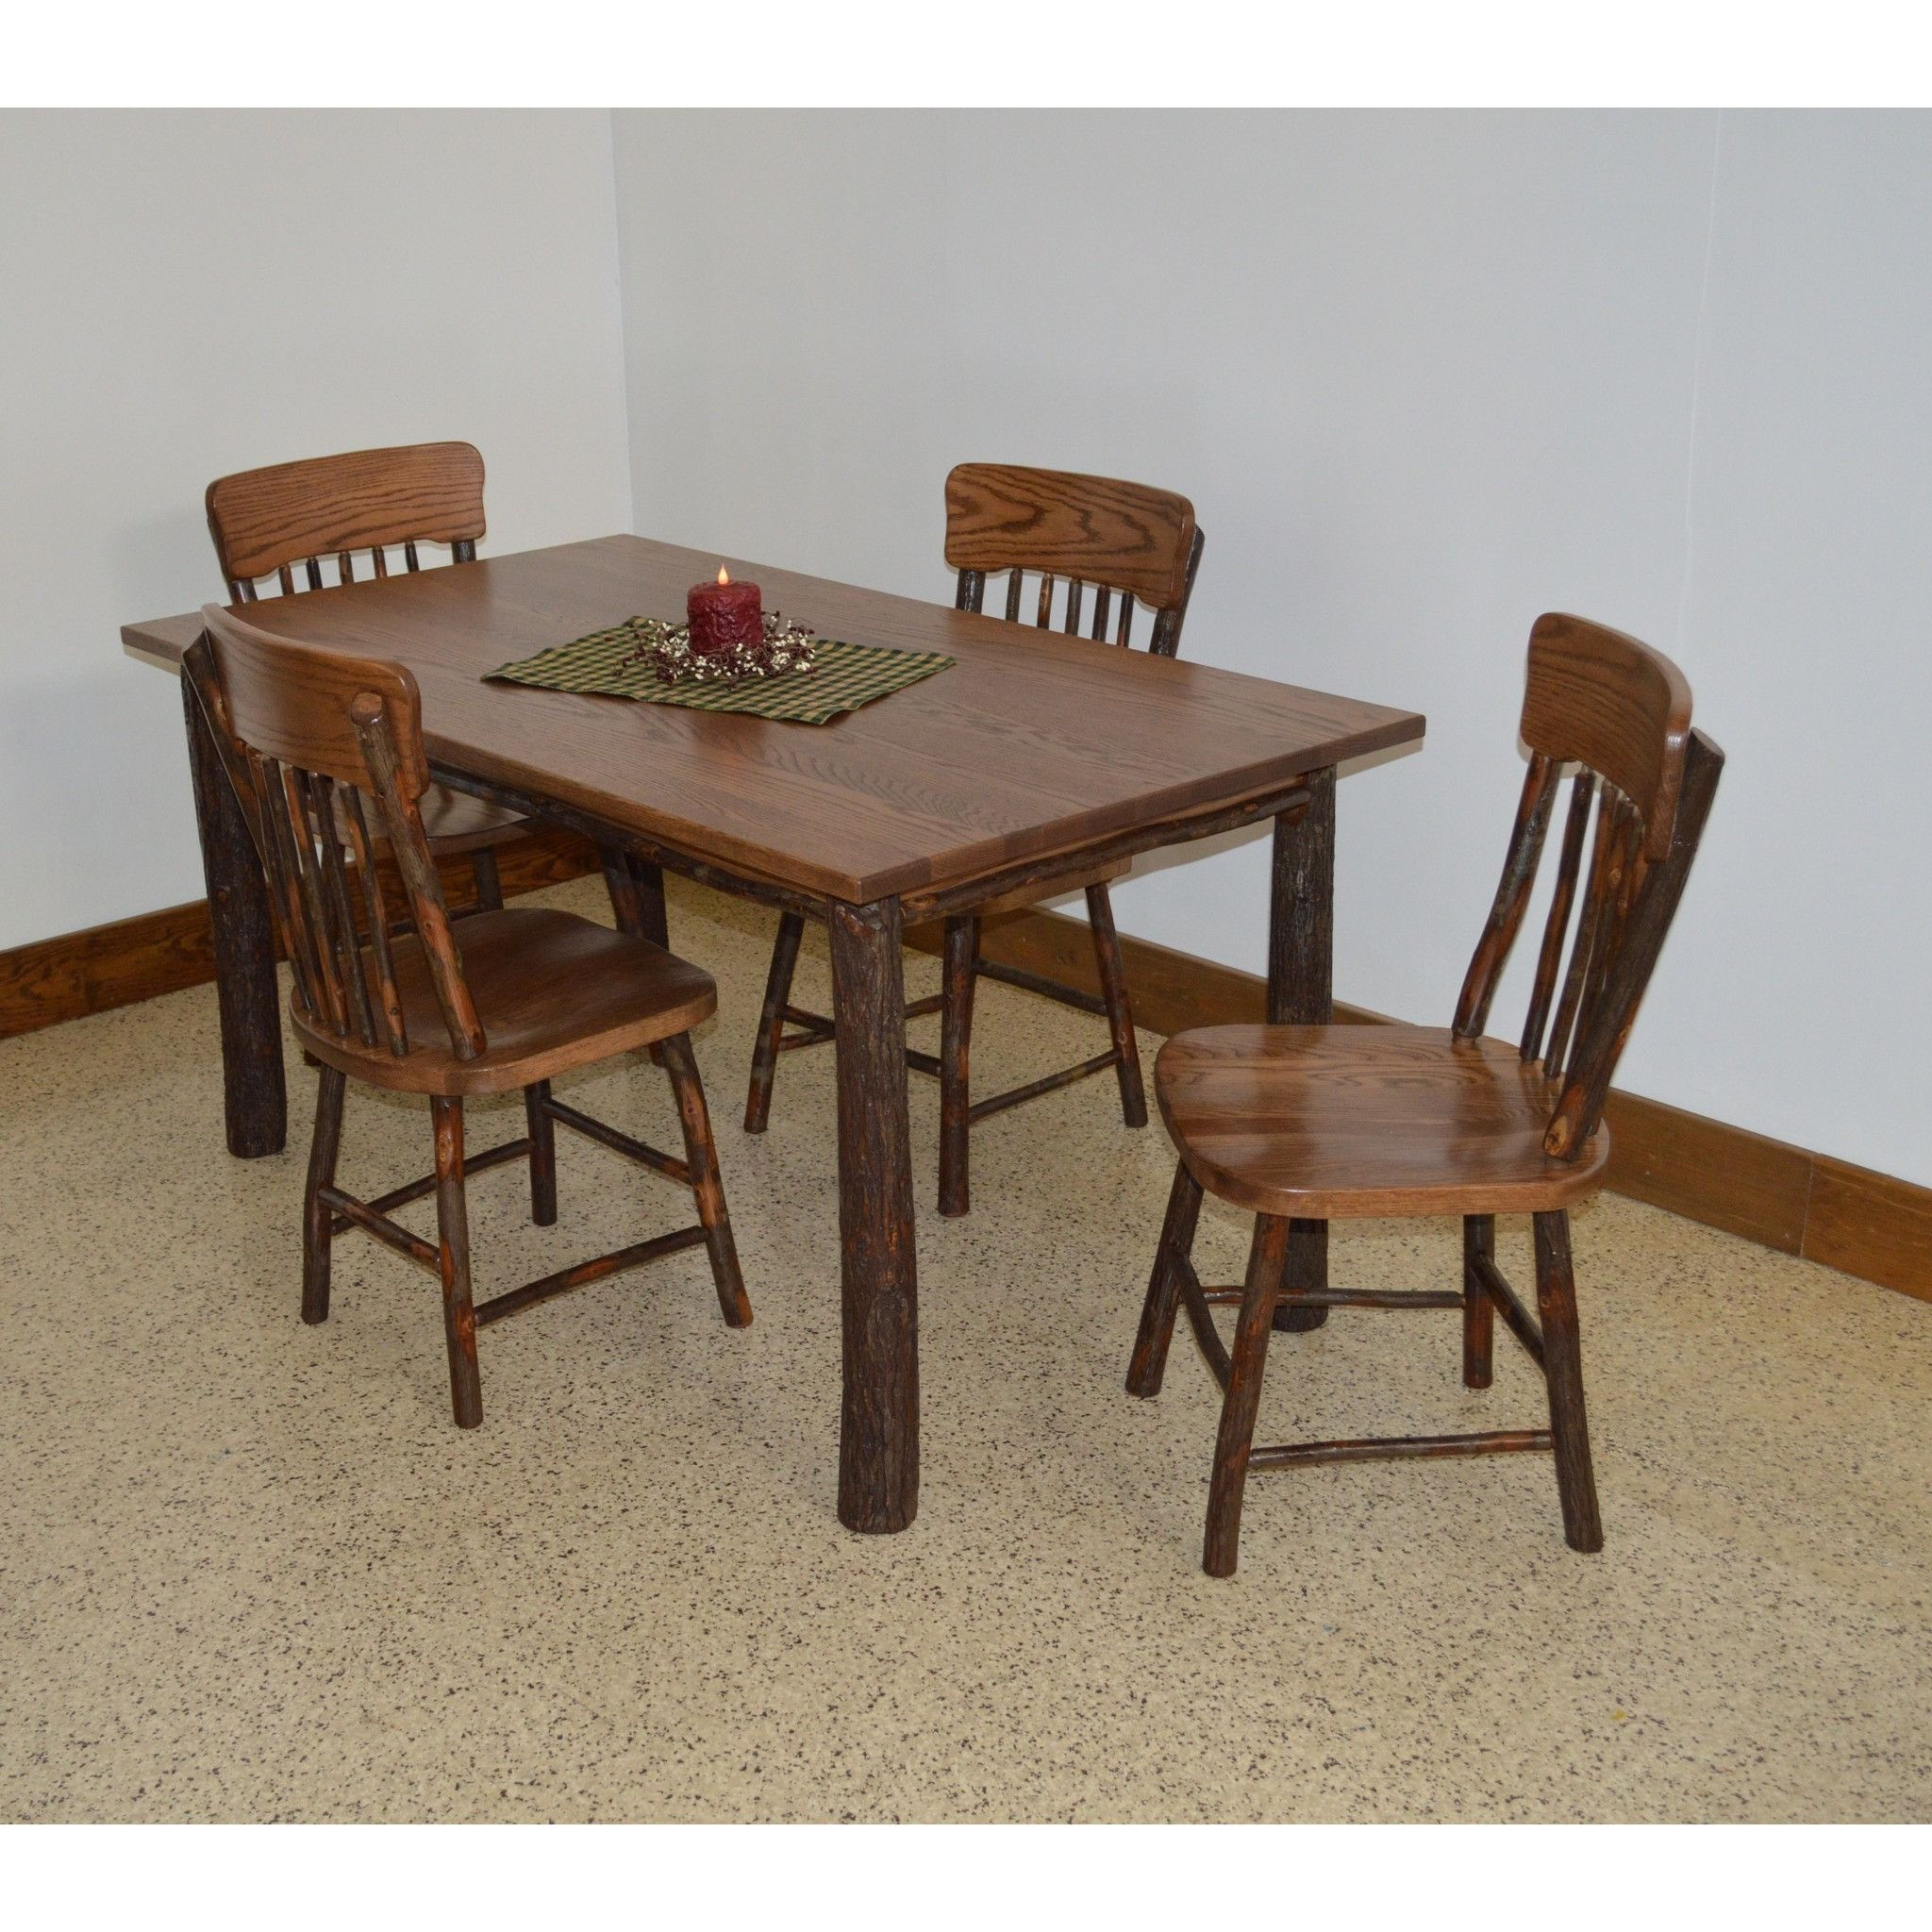 A u l furniture co hickory piece farm table dining set products